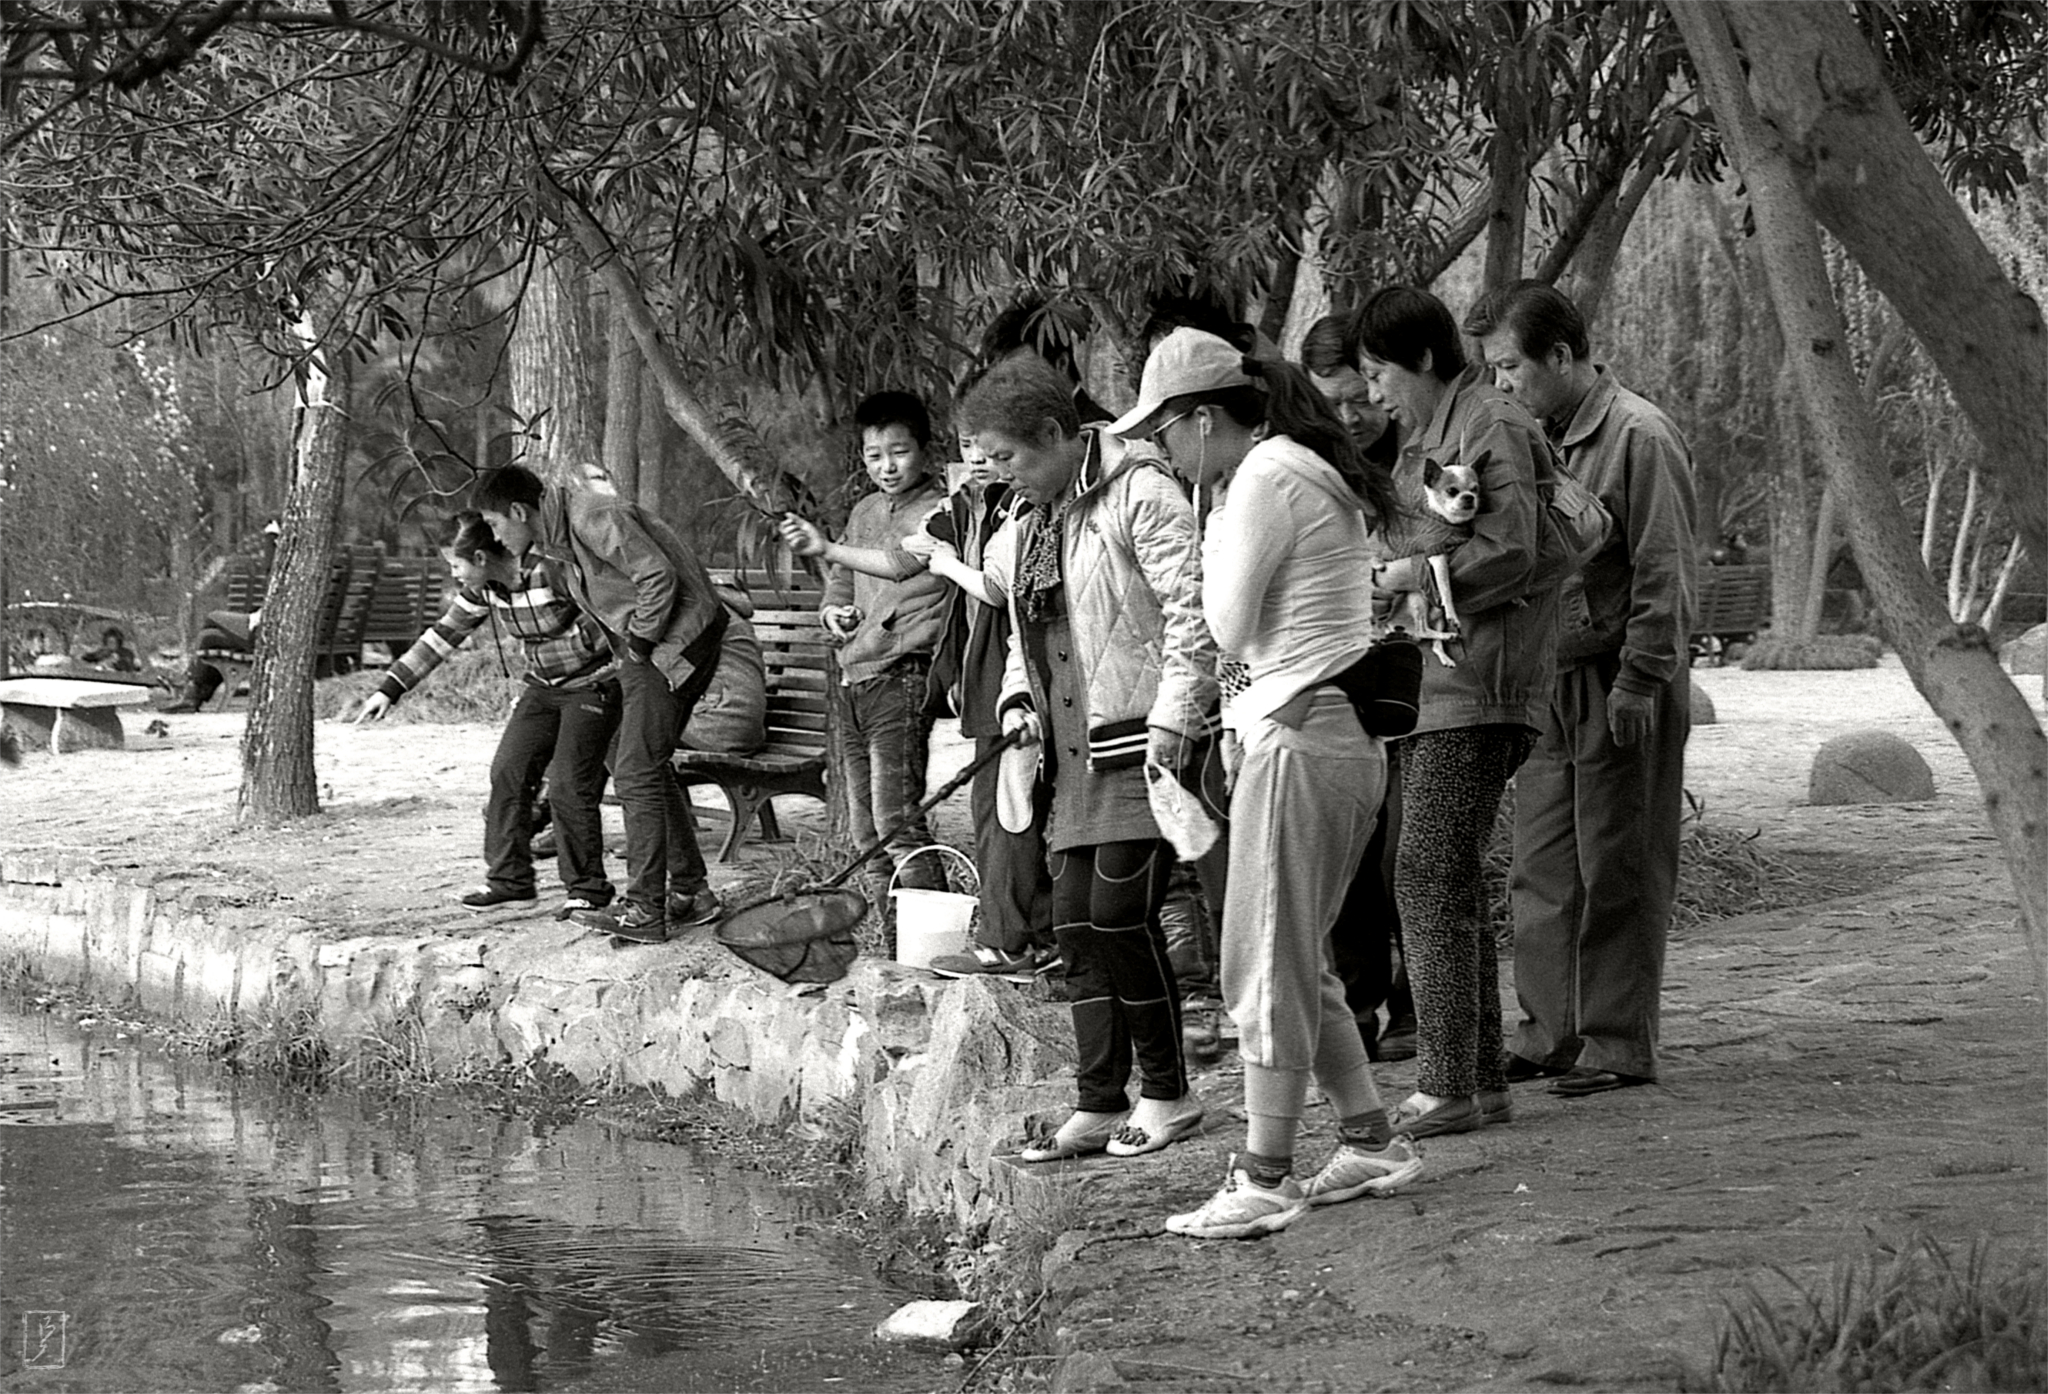 Lu Xun park (鲁迅公园): Visitors of the park discovered something in the water.